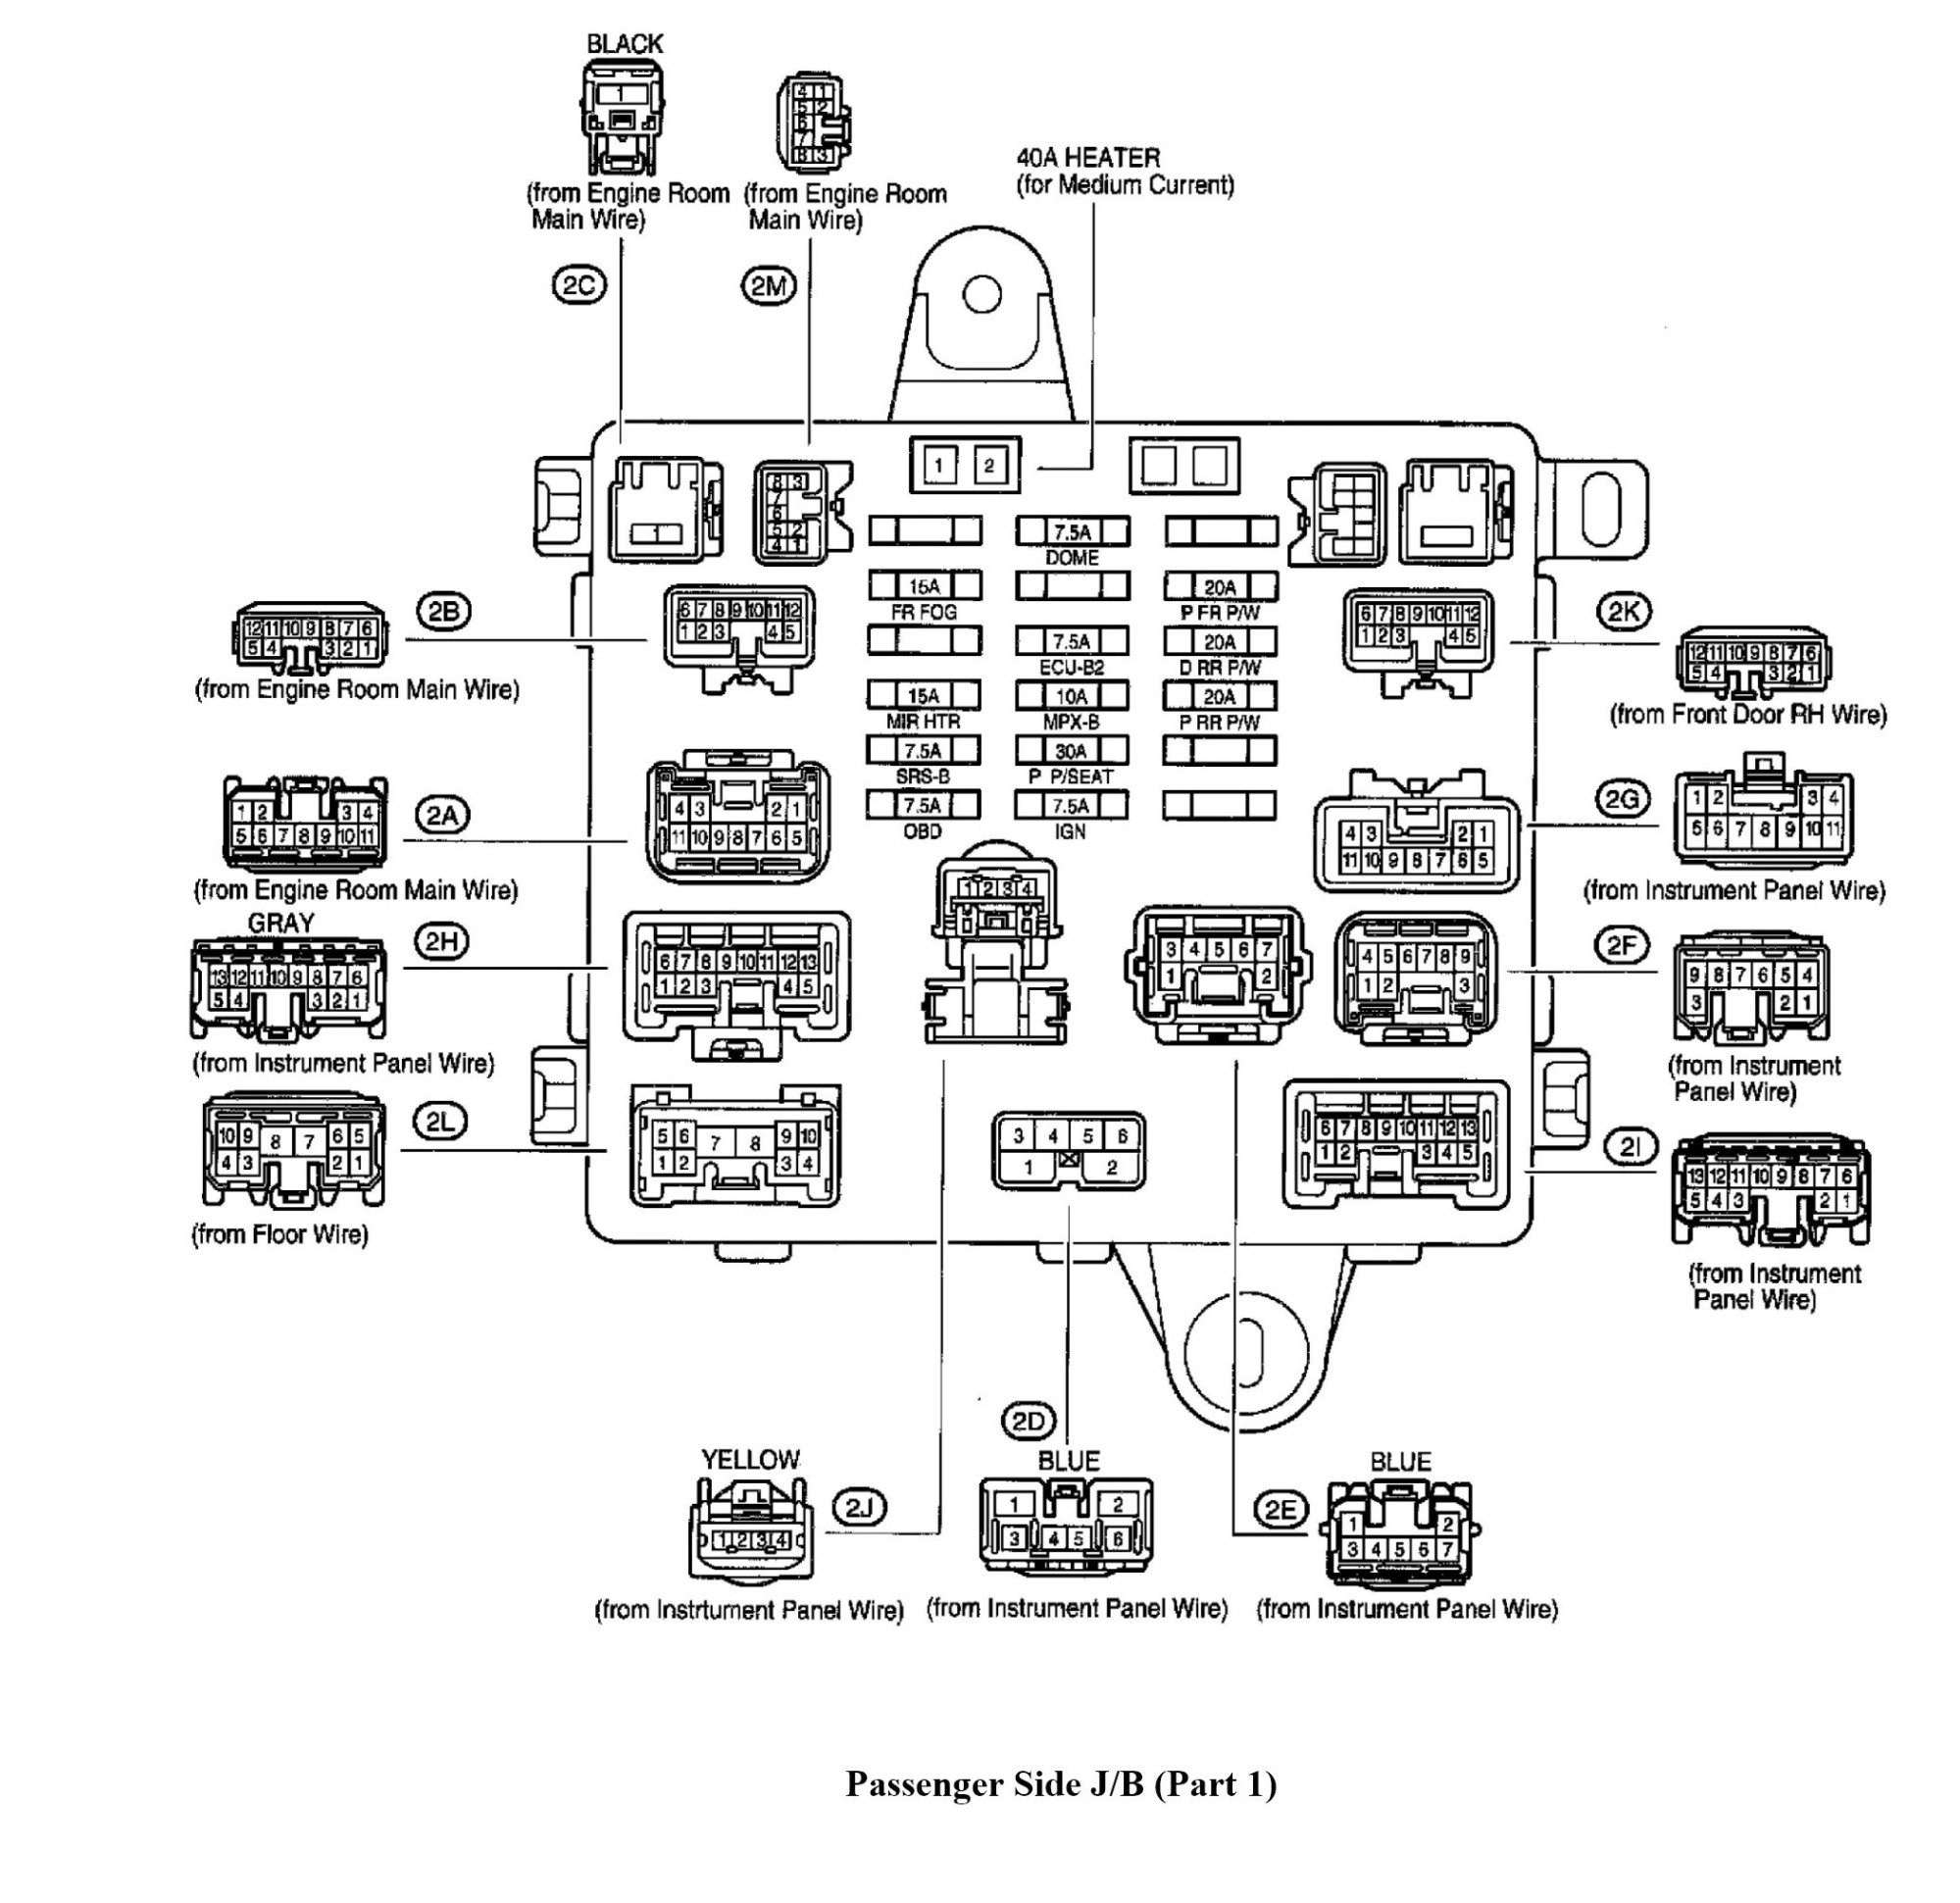 hight resolution of lexus fuse diagram wiring diagram go 2001 lexus is300 fuse box diagram lexus is200 fuse box diagram